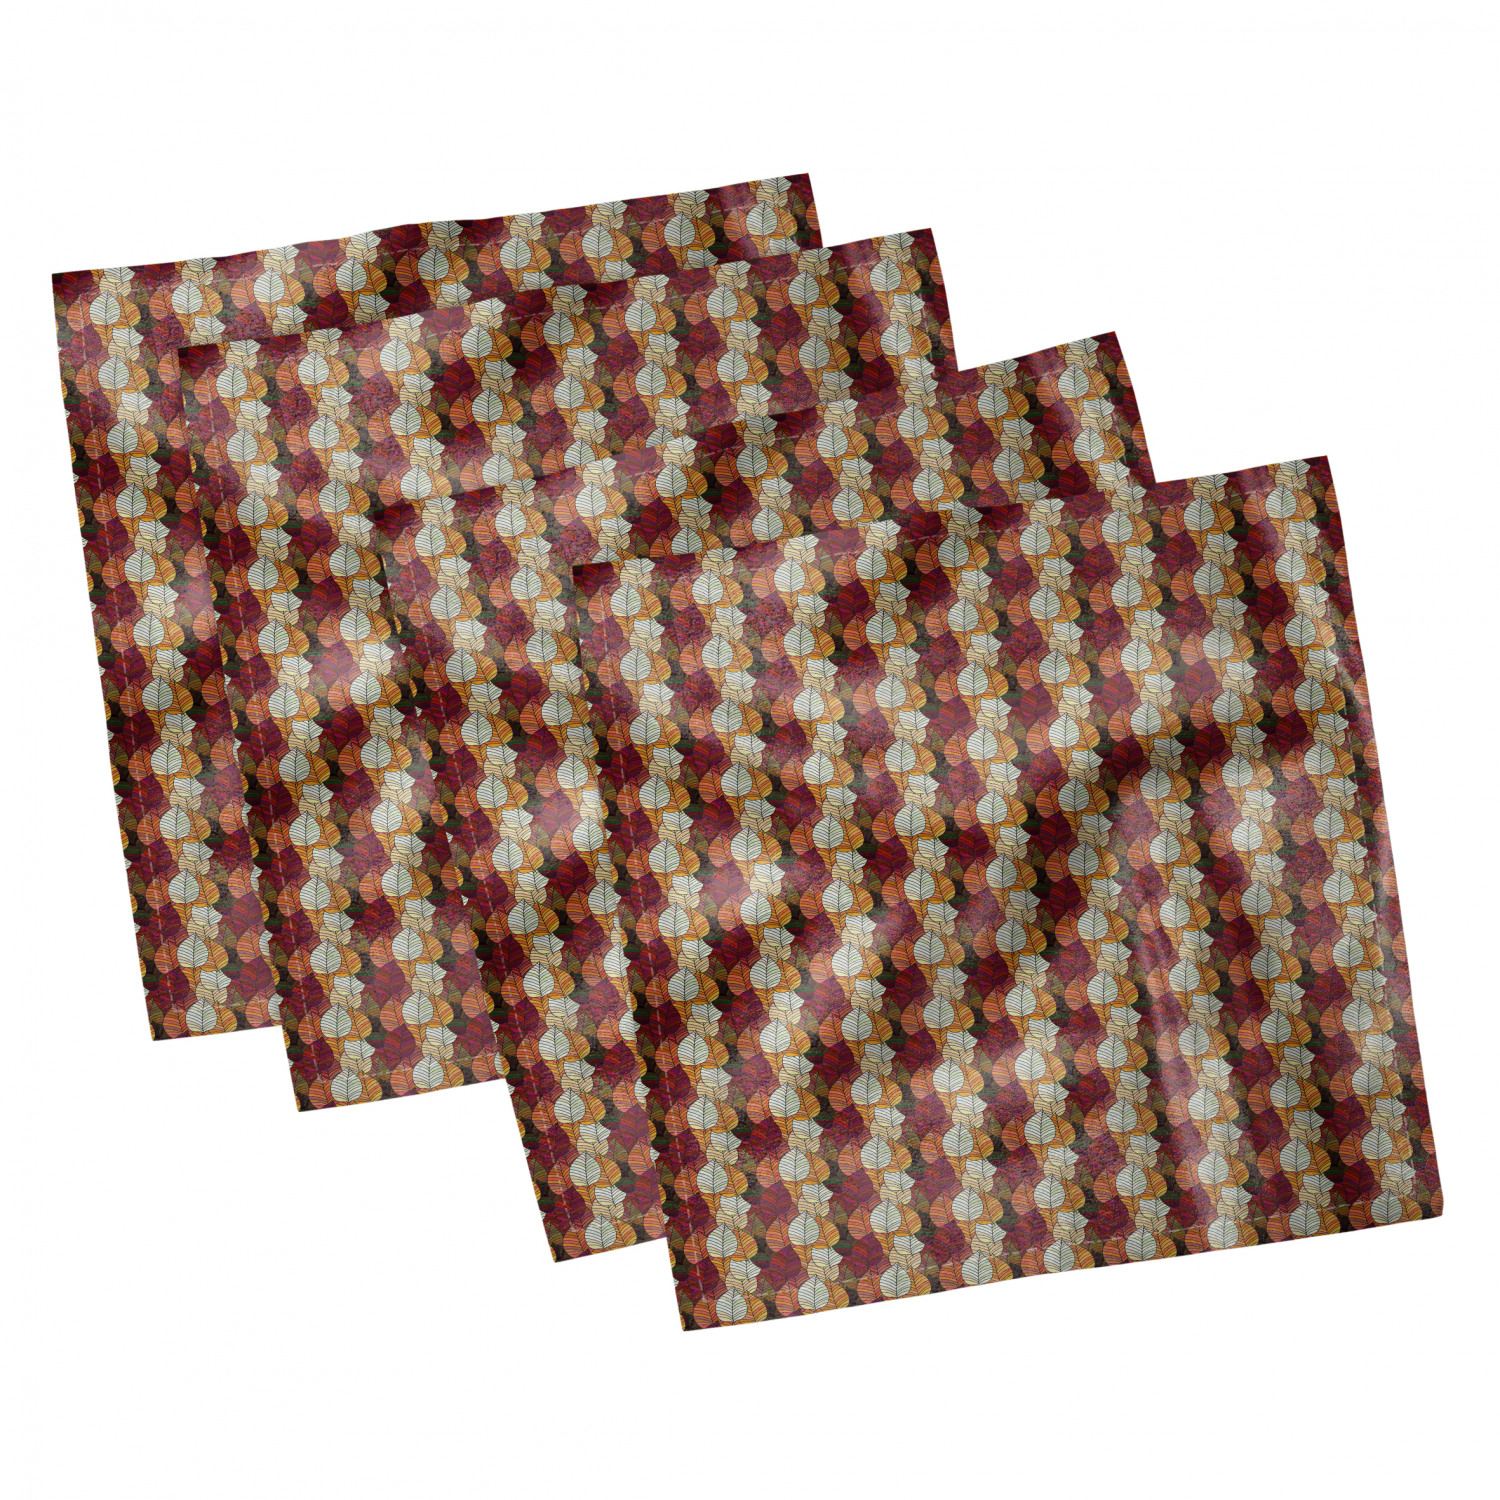 thumbnail 105 - Ambesonne-Leaves-Forest-Decorative-Satin-Napkins-Set-of-4-Party-Dinner-Fabric